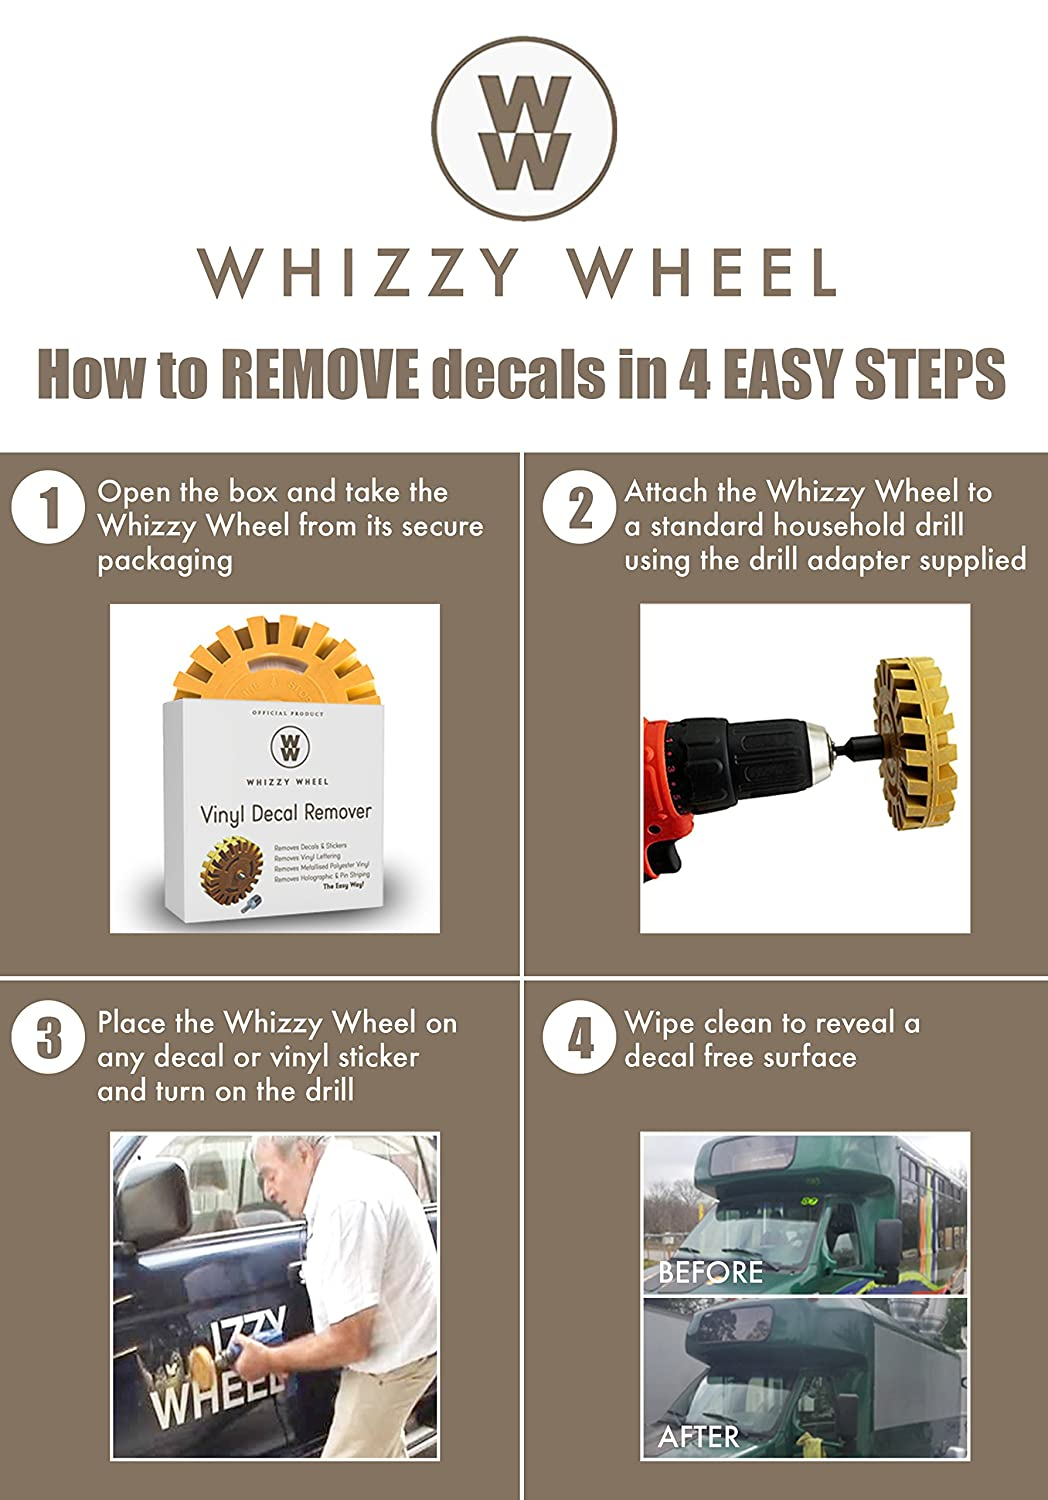 Amazoncom Whizzy Wheel Car Decal Remover With Drill Adapter Kit - Vinyl decals for cars removal